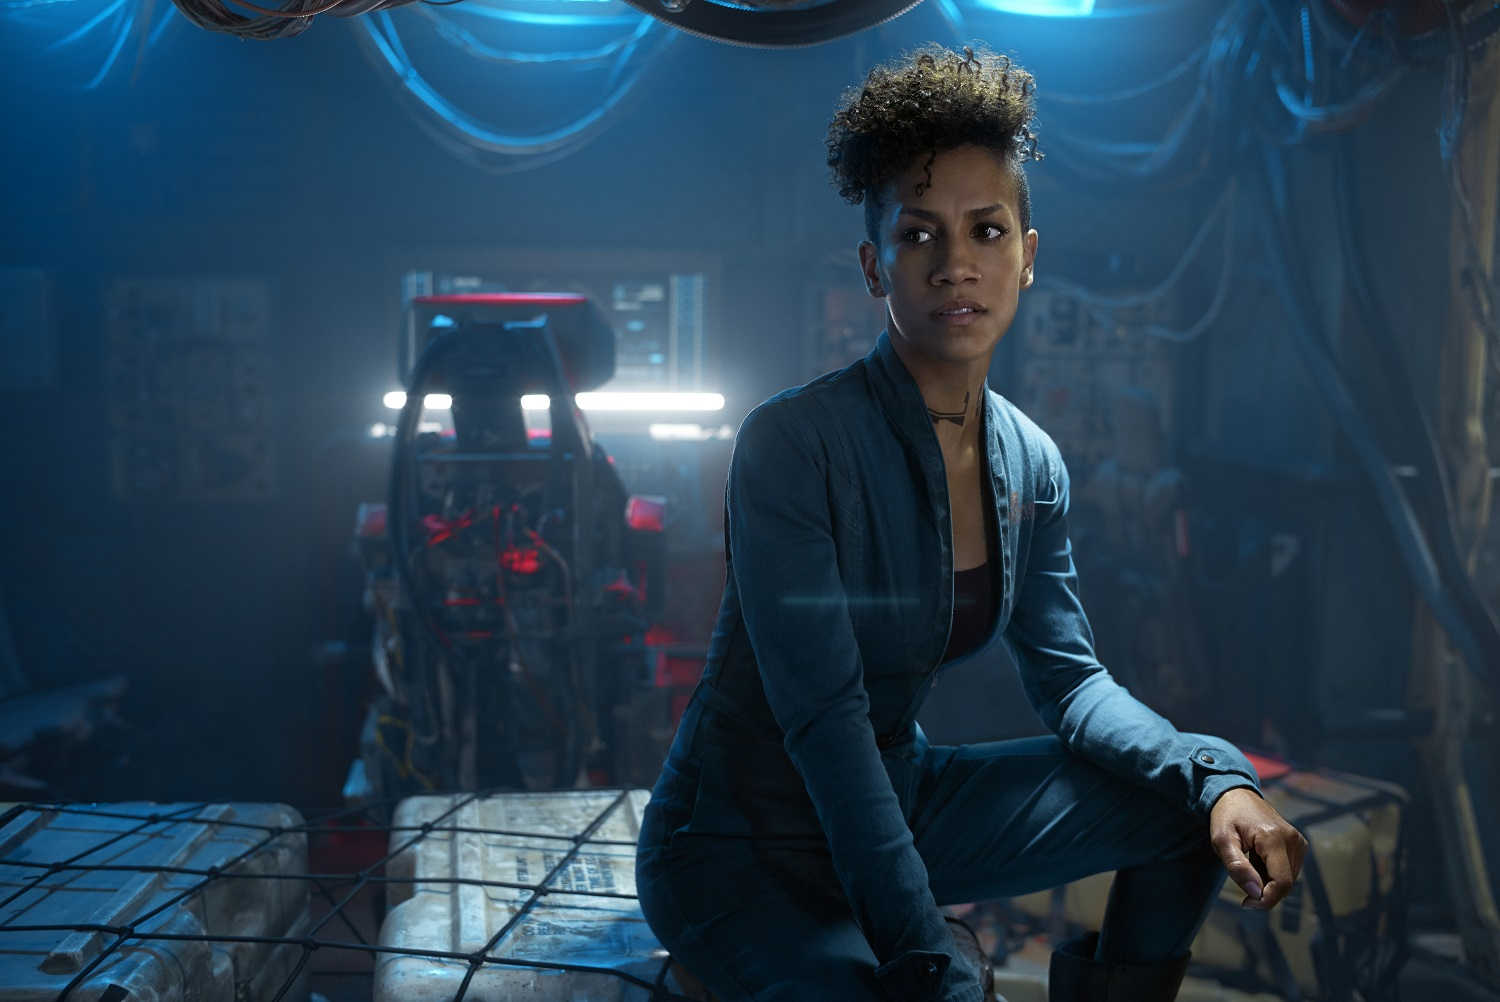 Dominique Tipper as Naomi Nagata on The Expanse